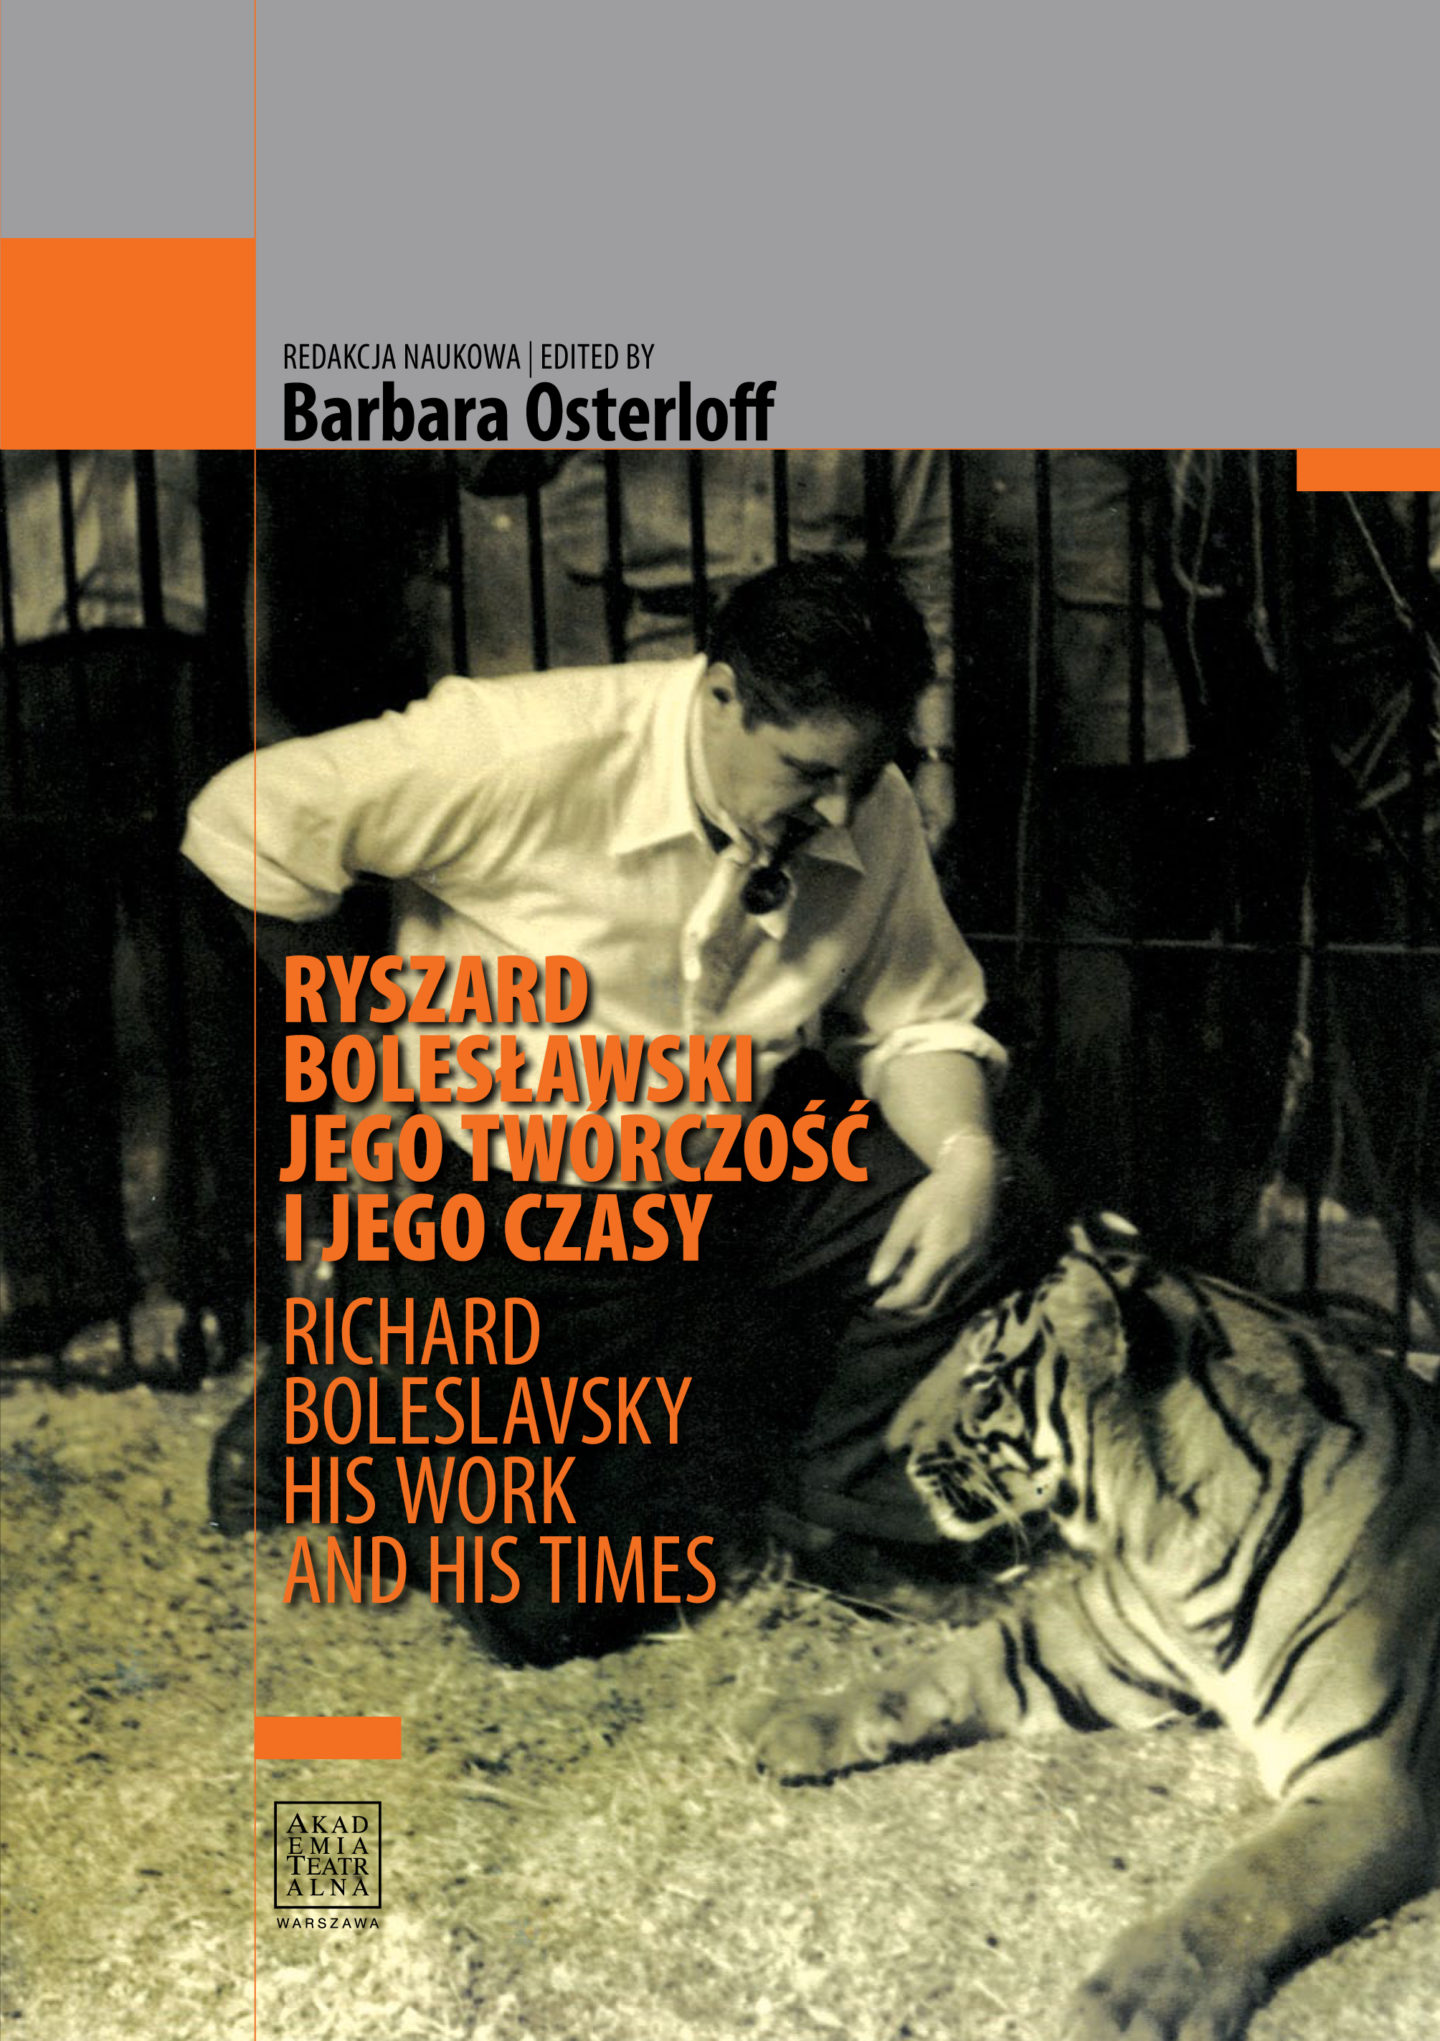 RYSZARD BOLESŁAWSKI. JEGO TWÓRCZOŚĆ I JEGO CZASY // RICHARD BOLESLAVSKY HIS WORK AND HIS TIMES <br> REDAKCJA NAUKOWA /EDITED BY/ BARBARA OSTERLOFF